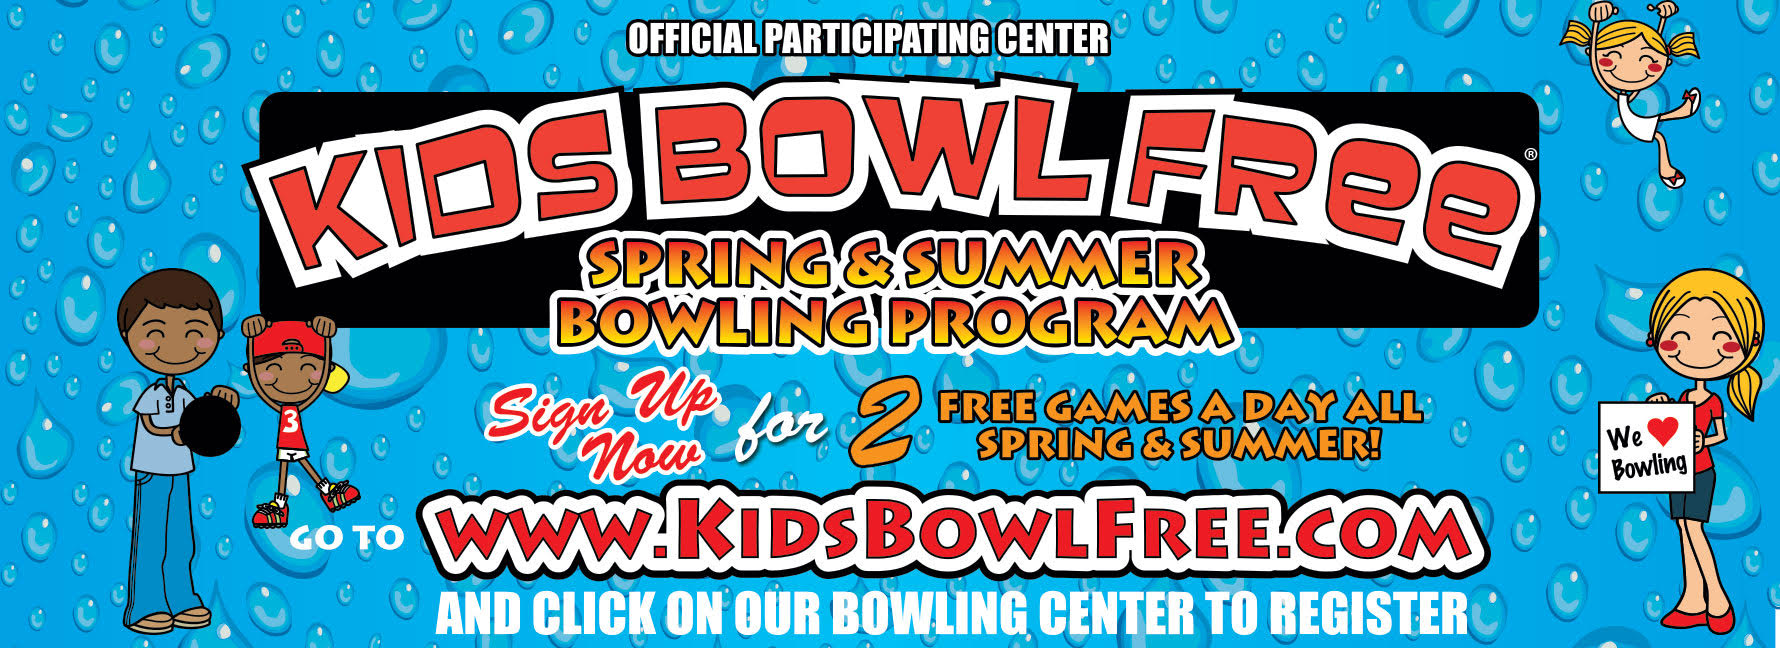 kids bowl free promotion barre vermont montpelier family fun